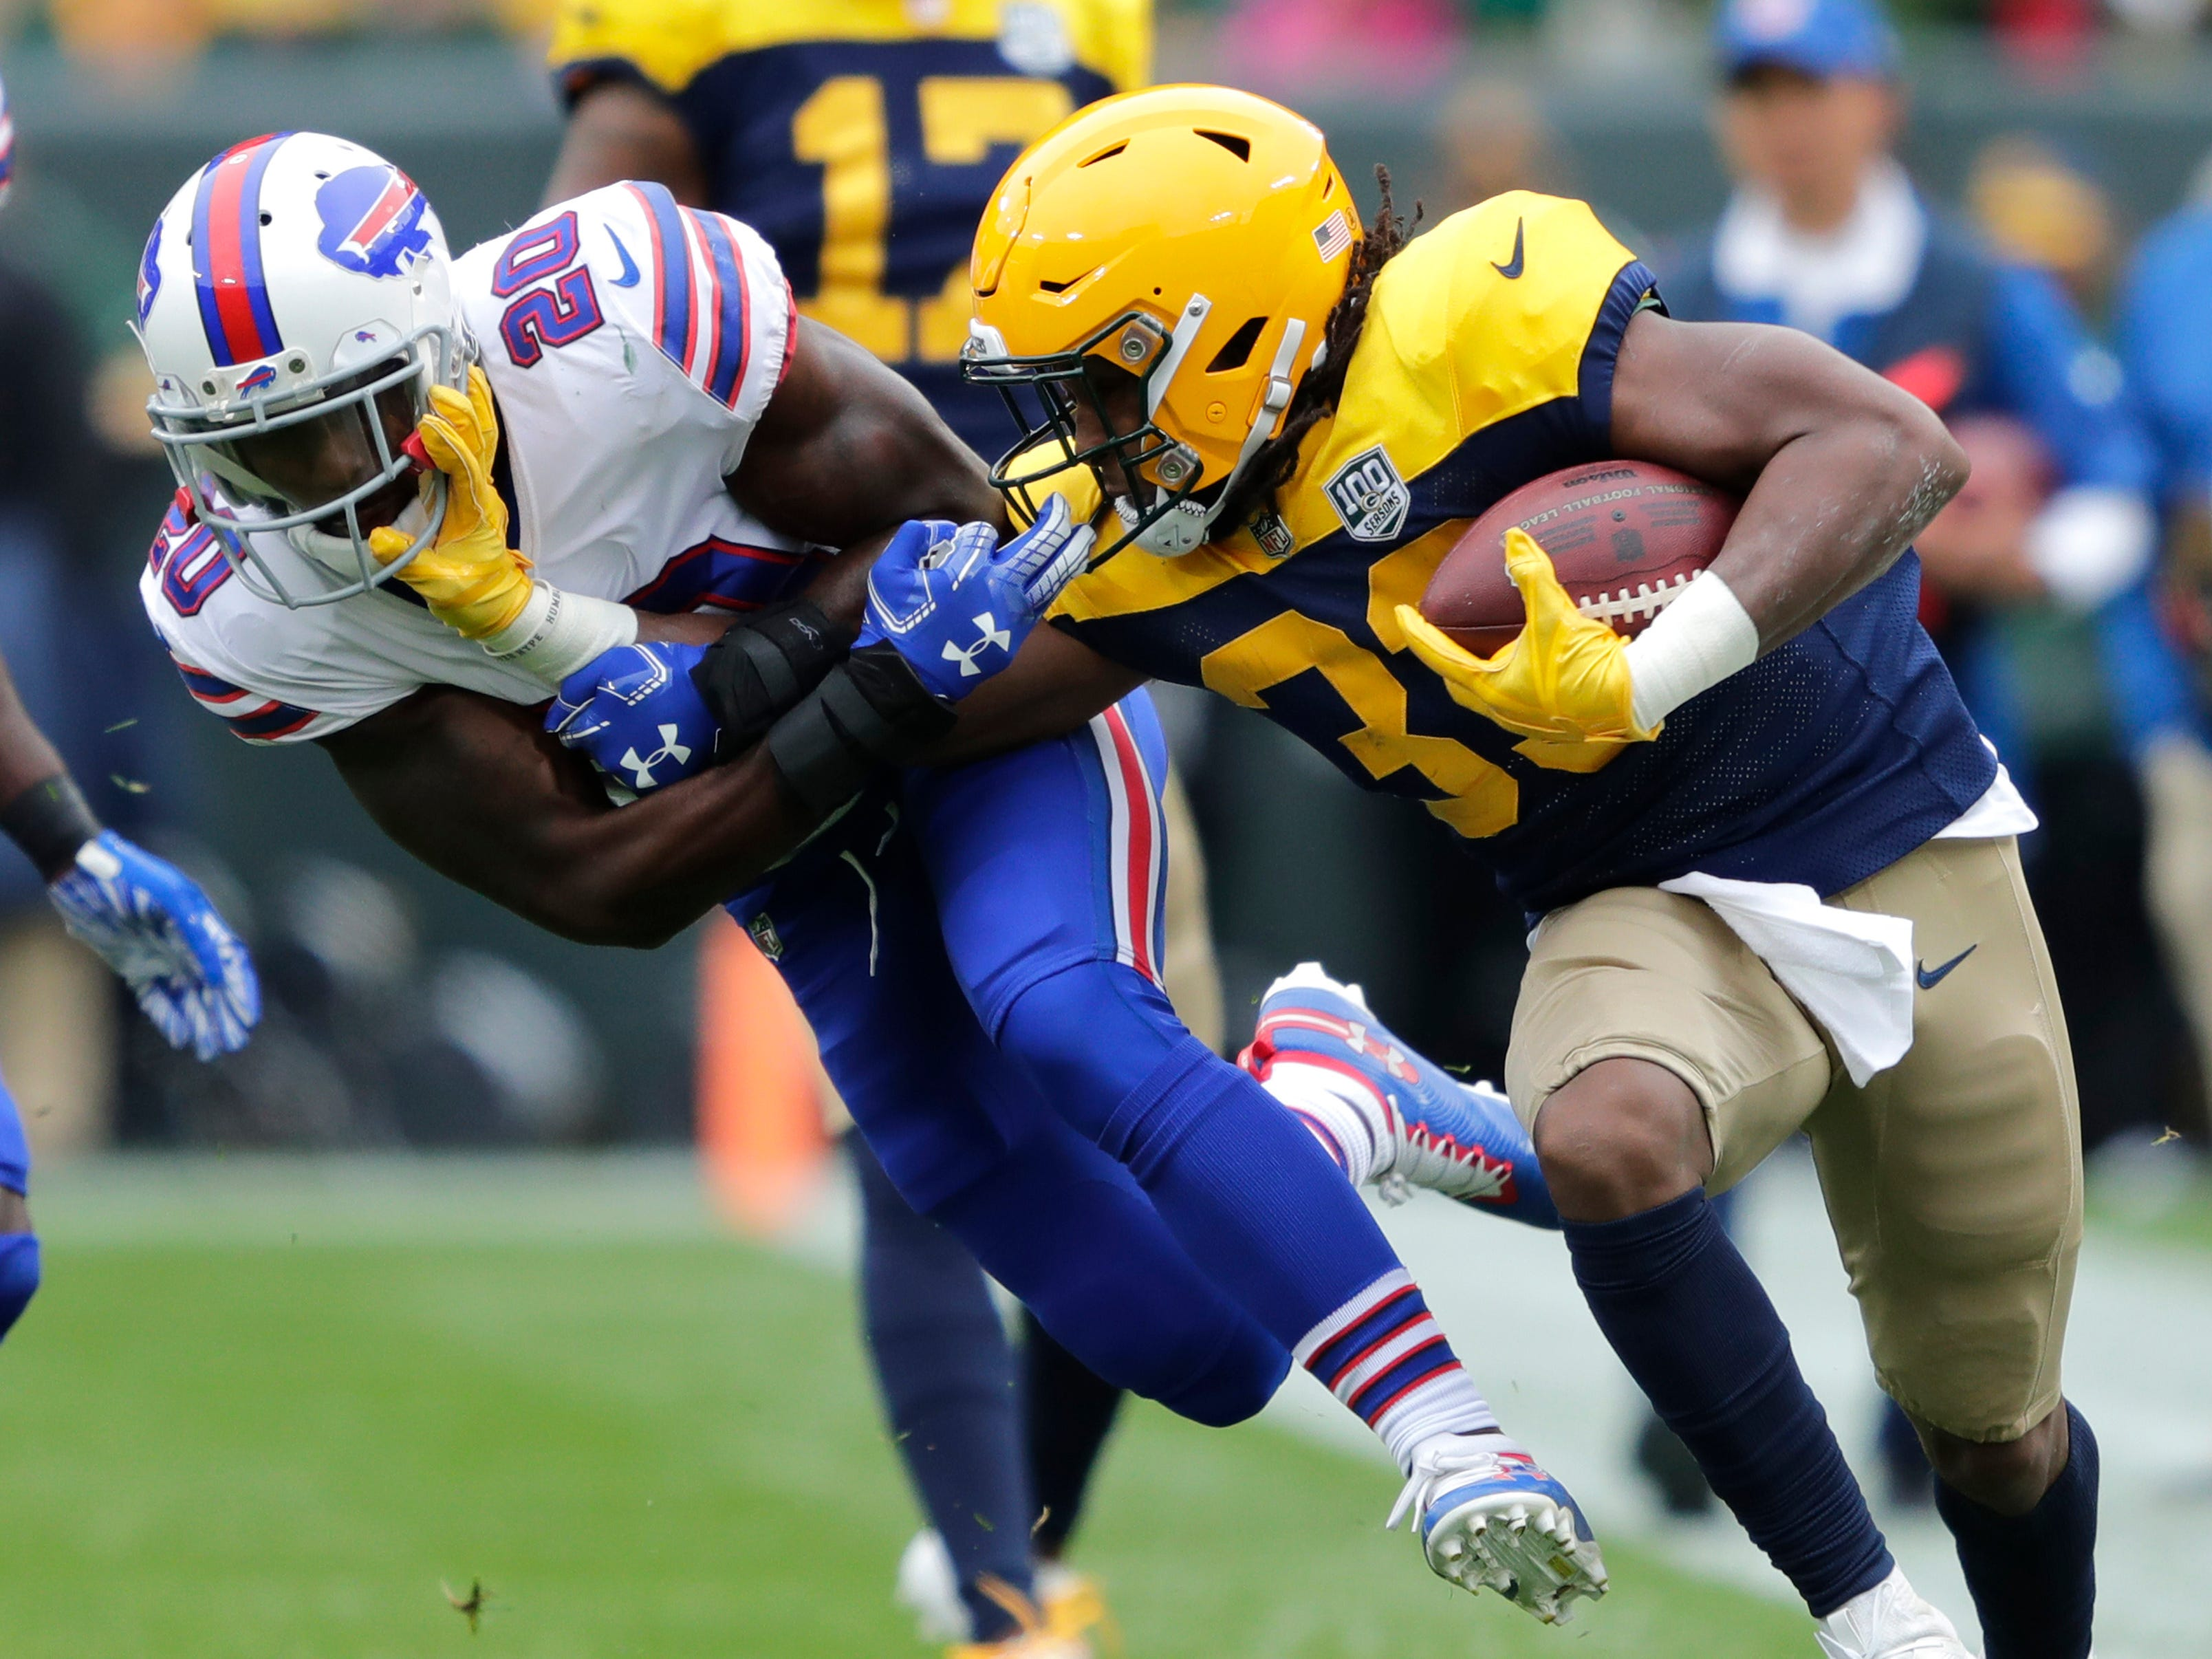 Green Bay Packers running back Aaron Jones stiff arms Buffalo Bills defensive back Rafael Bush during the first quarter at Lambeau Field.